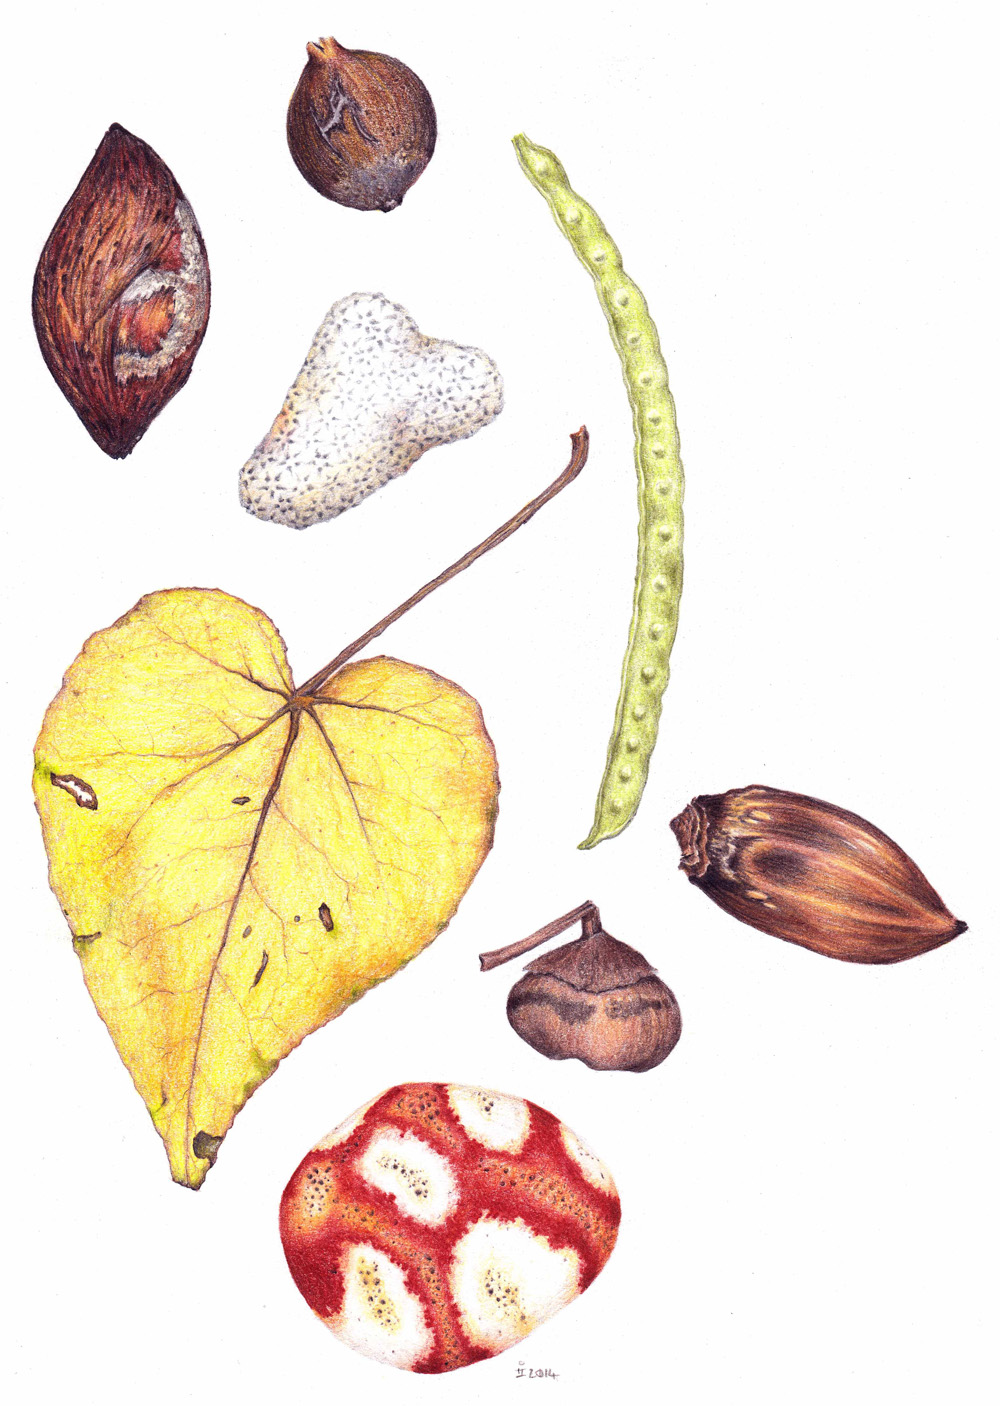 A colour pencil drawing of washed up tree seeds, fragments of coral, and a dead leaf